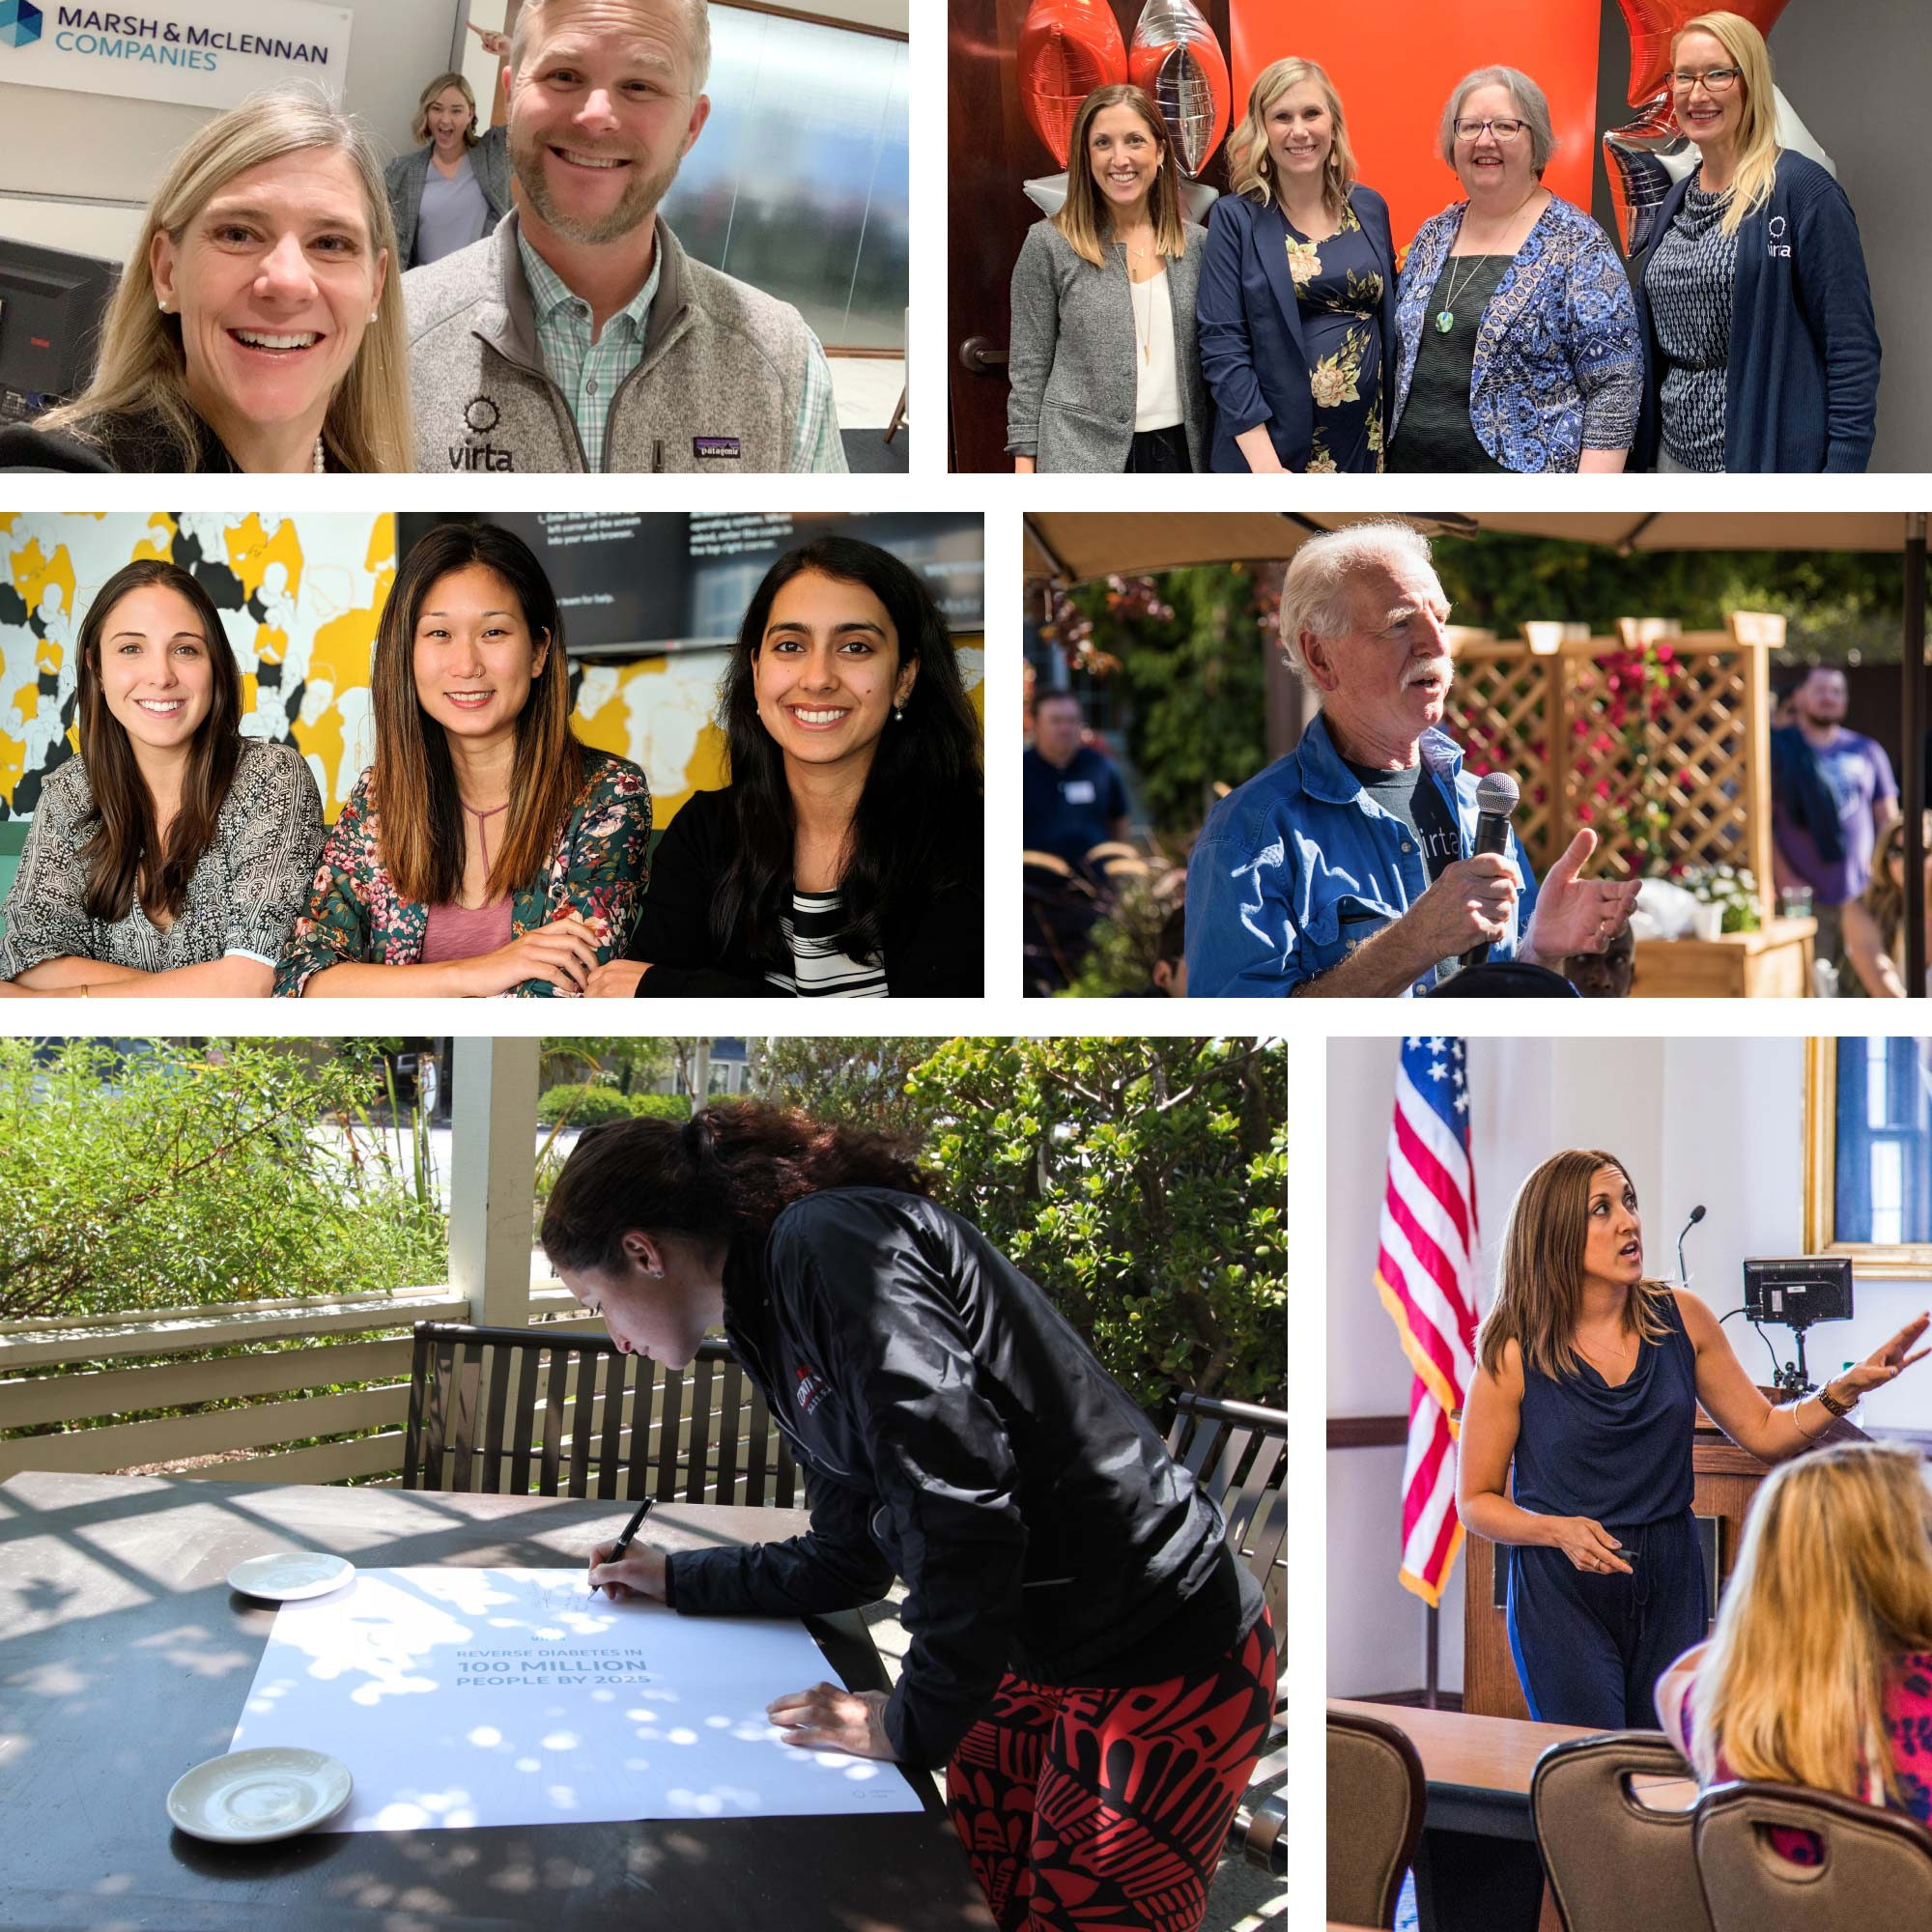 A collage of photos of the Marketing team at Virta